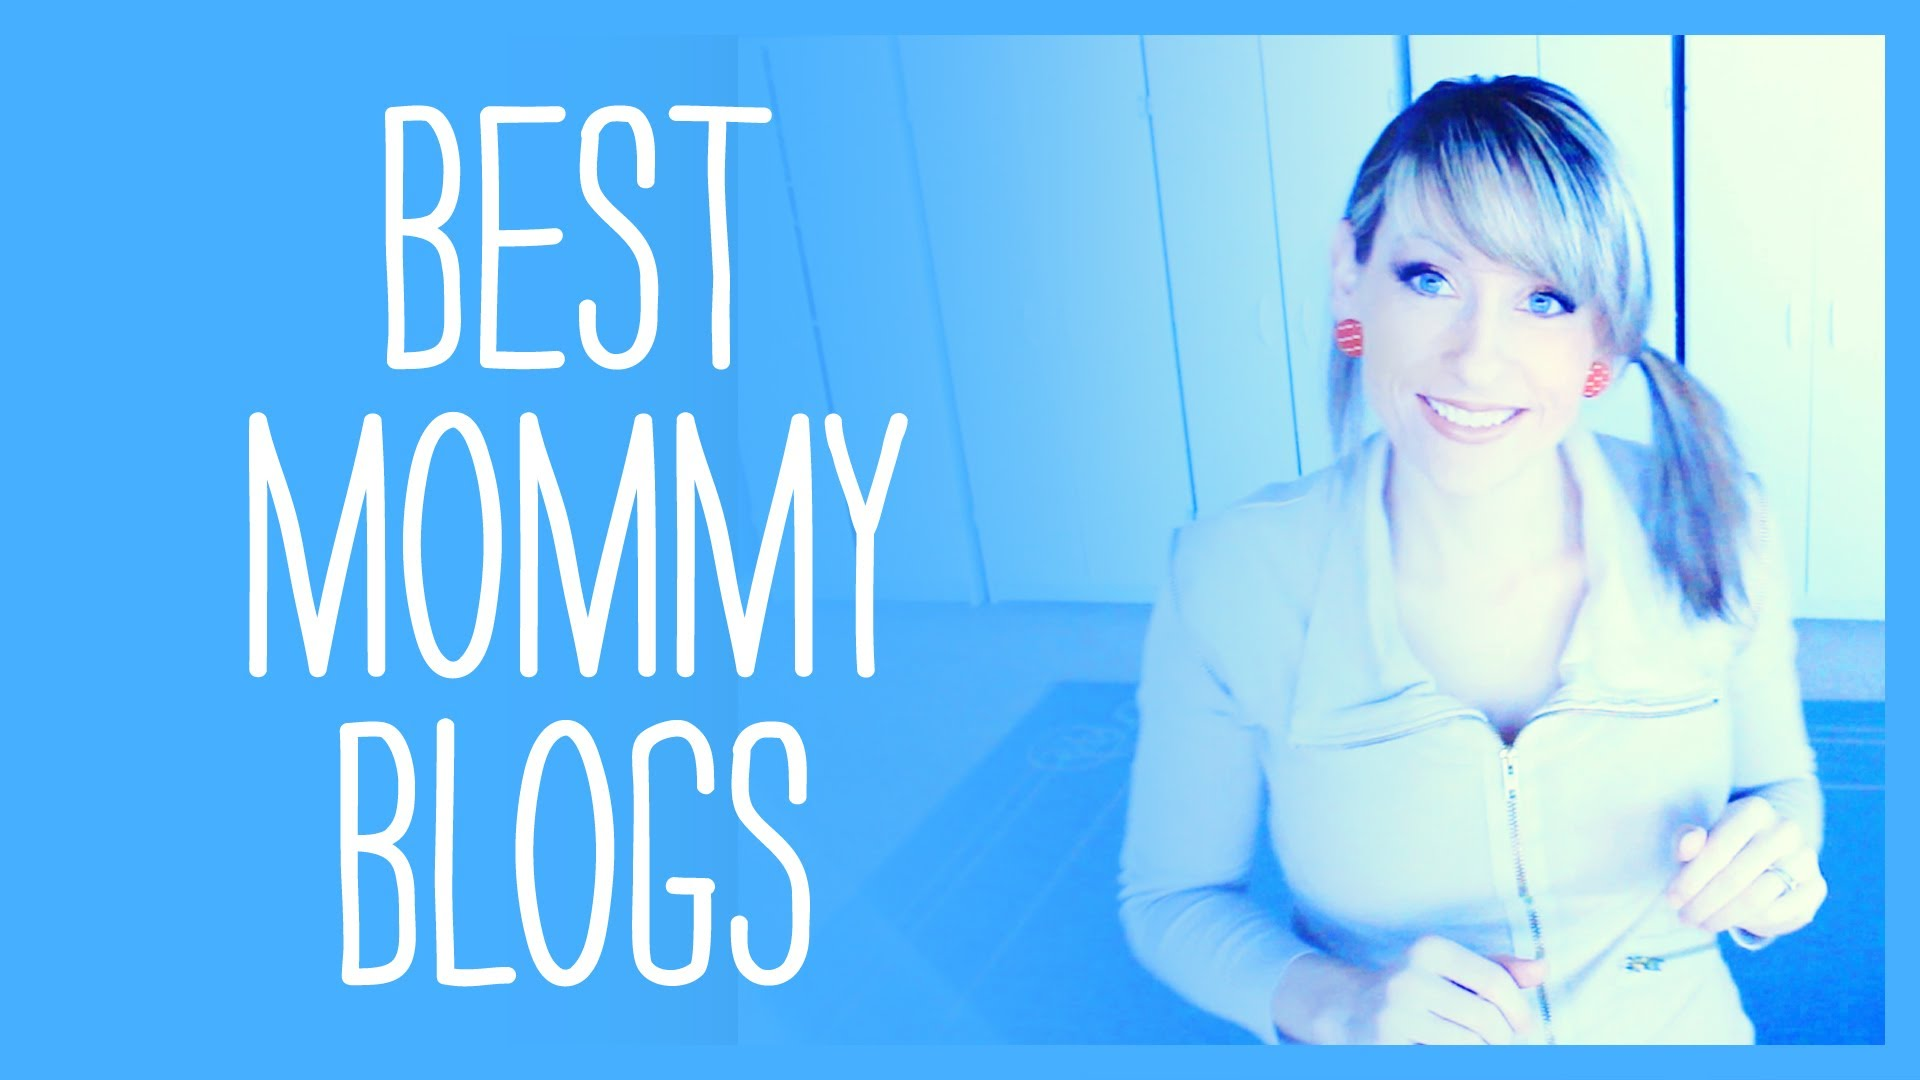 Guest post on largest mommy blog